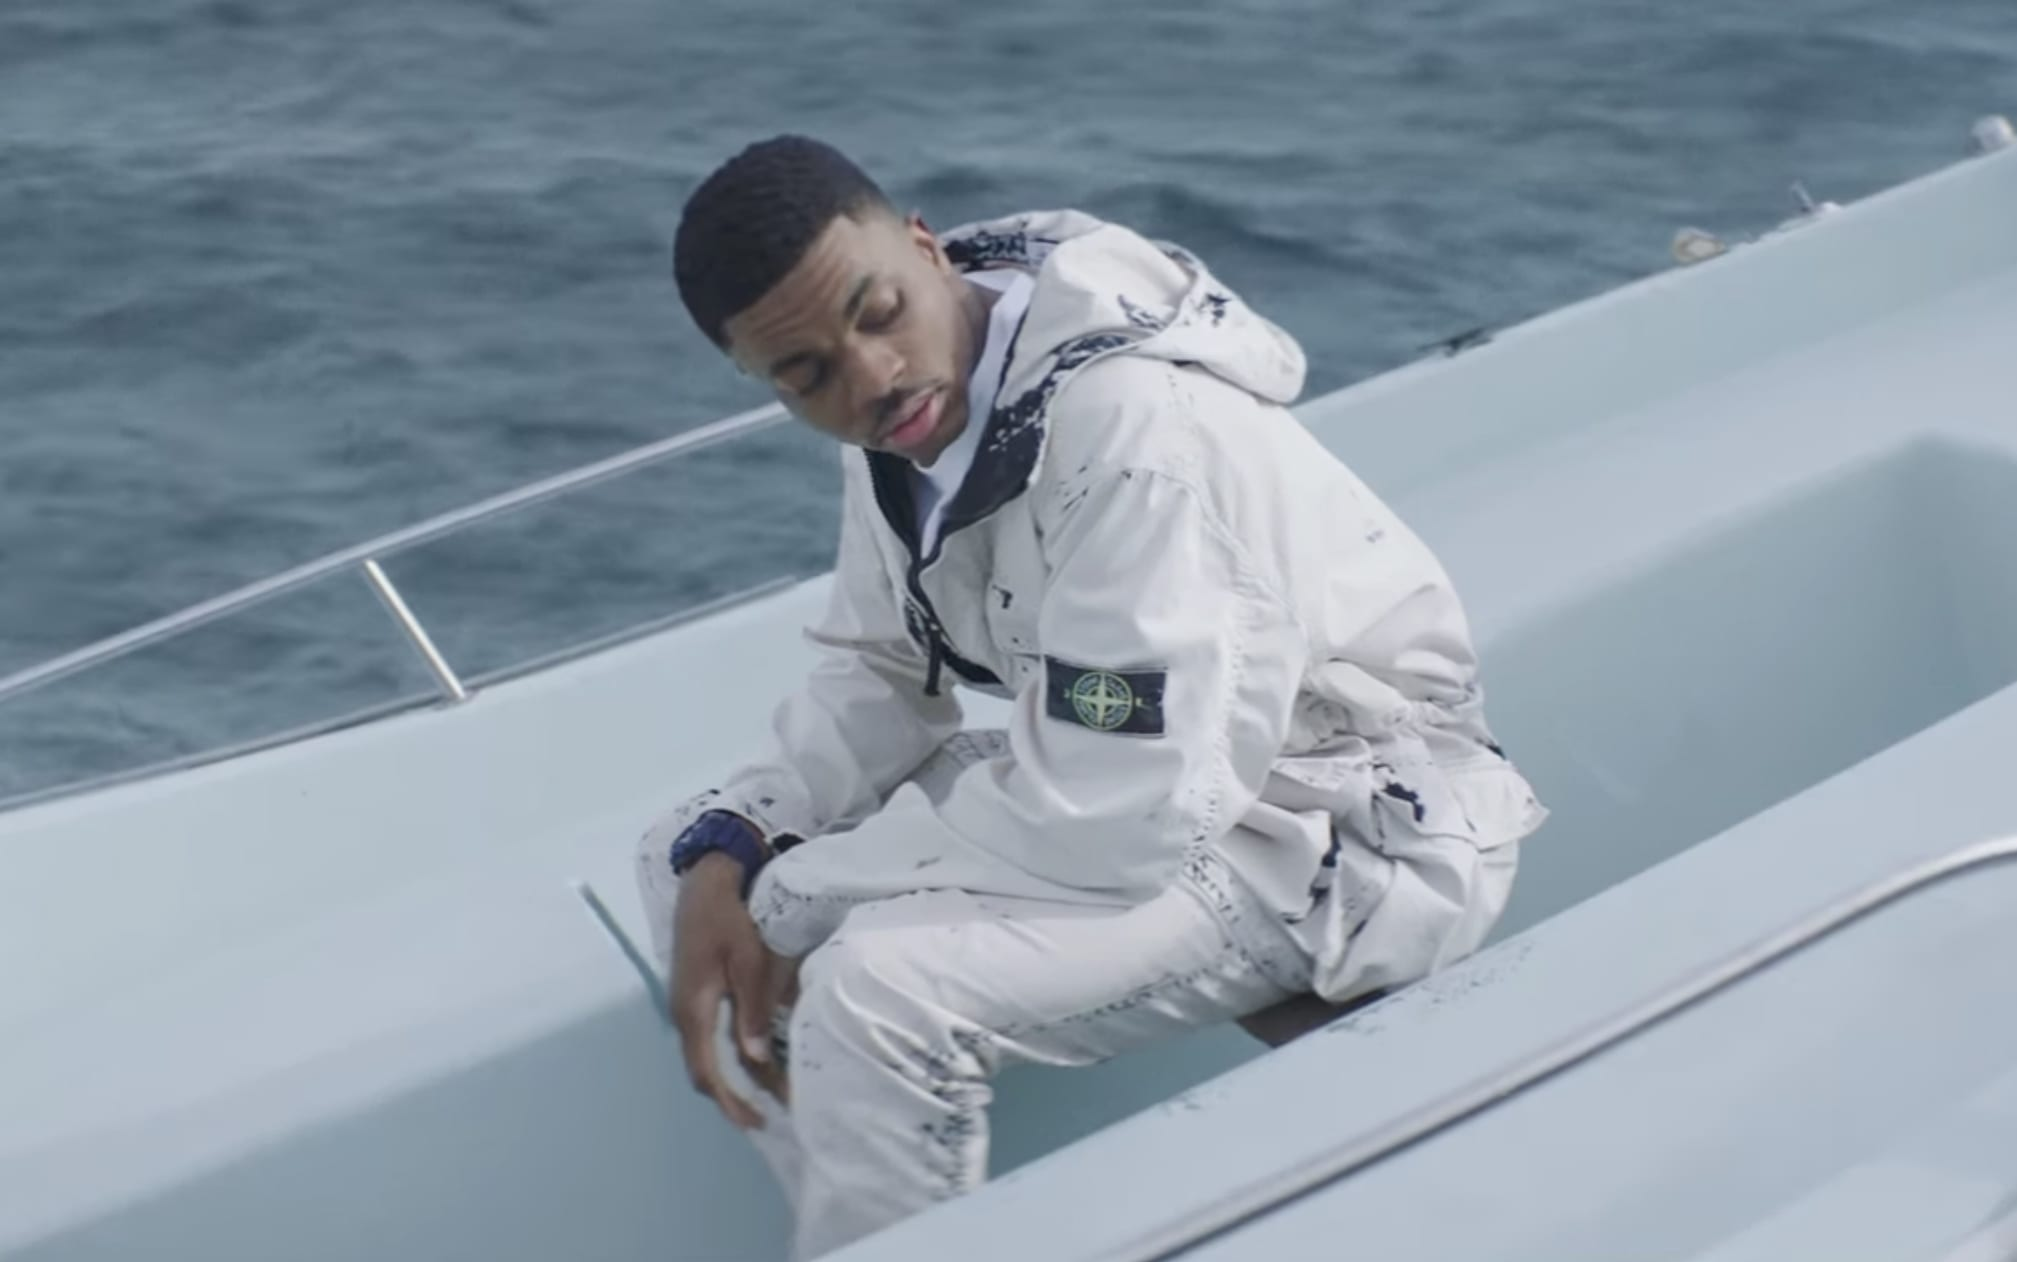 vince-staples-boat